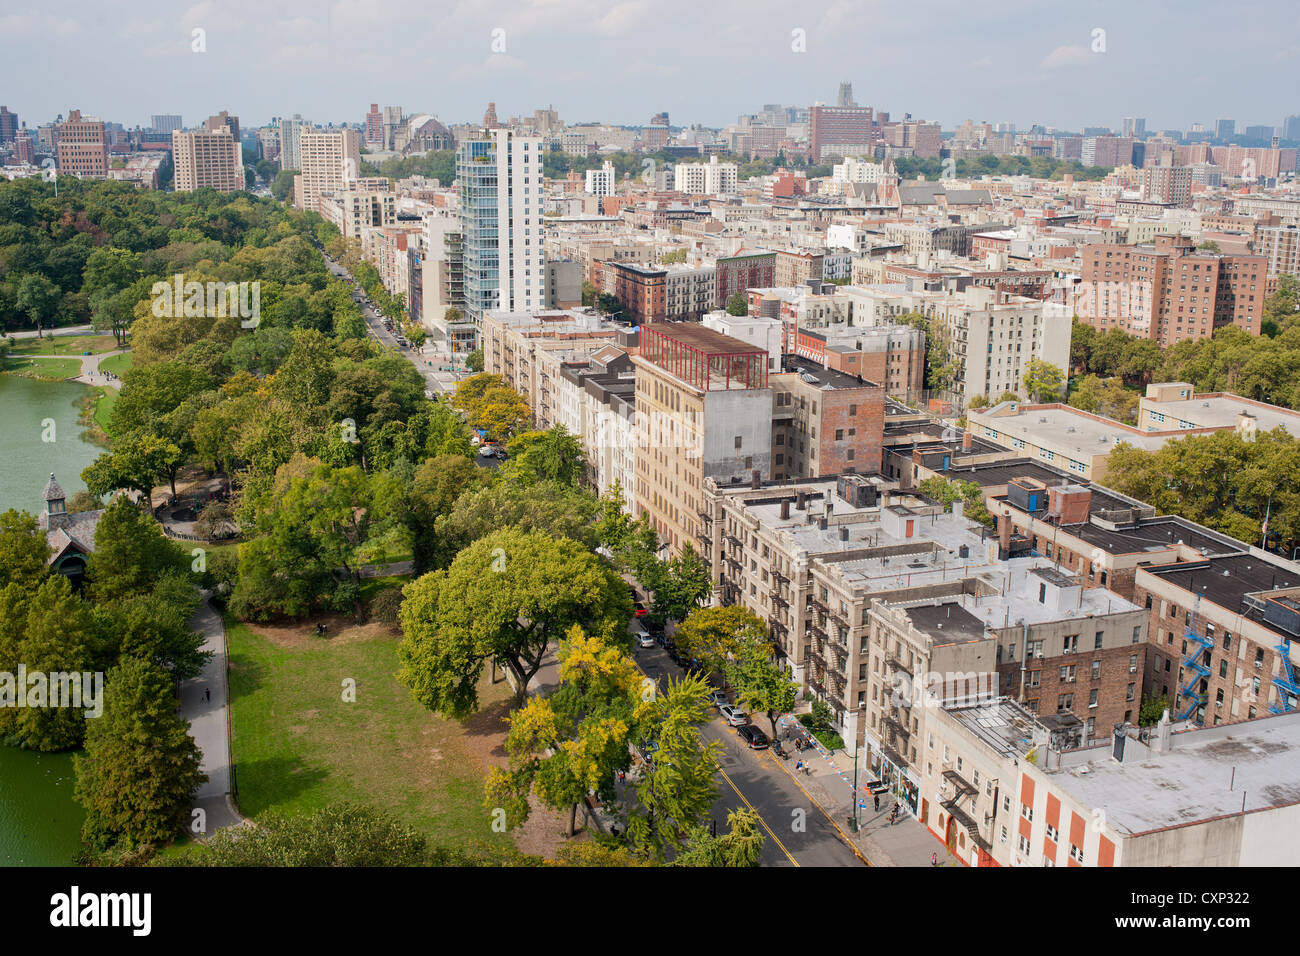 The northern end of Central Park where it meets Harlem - Stock Image